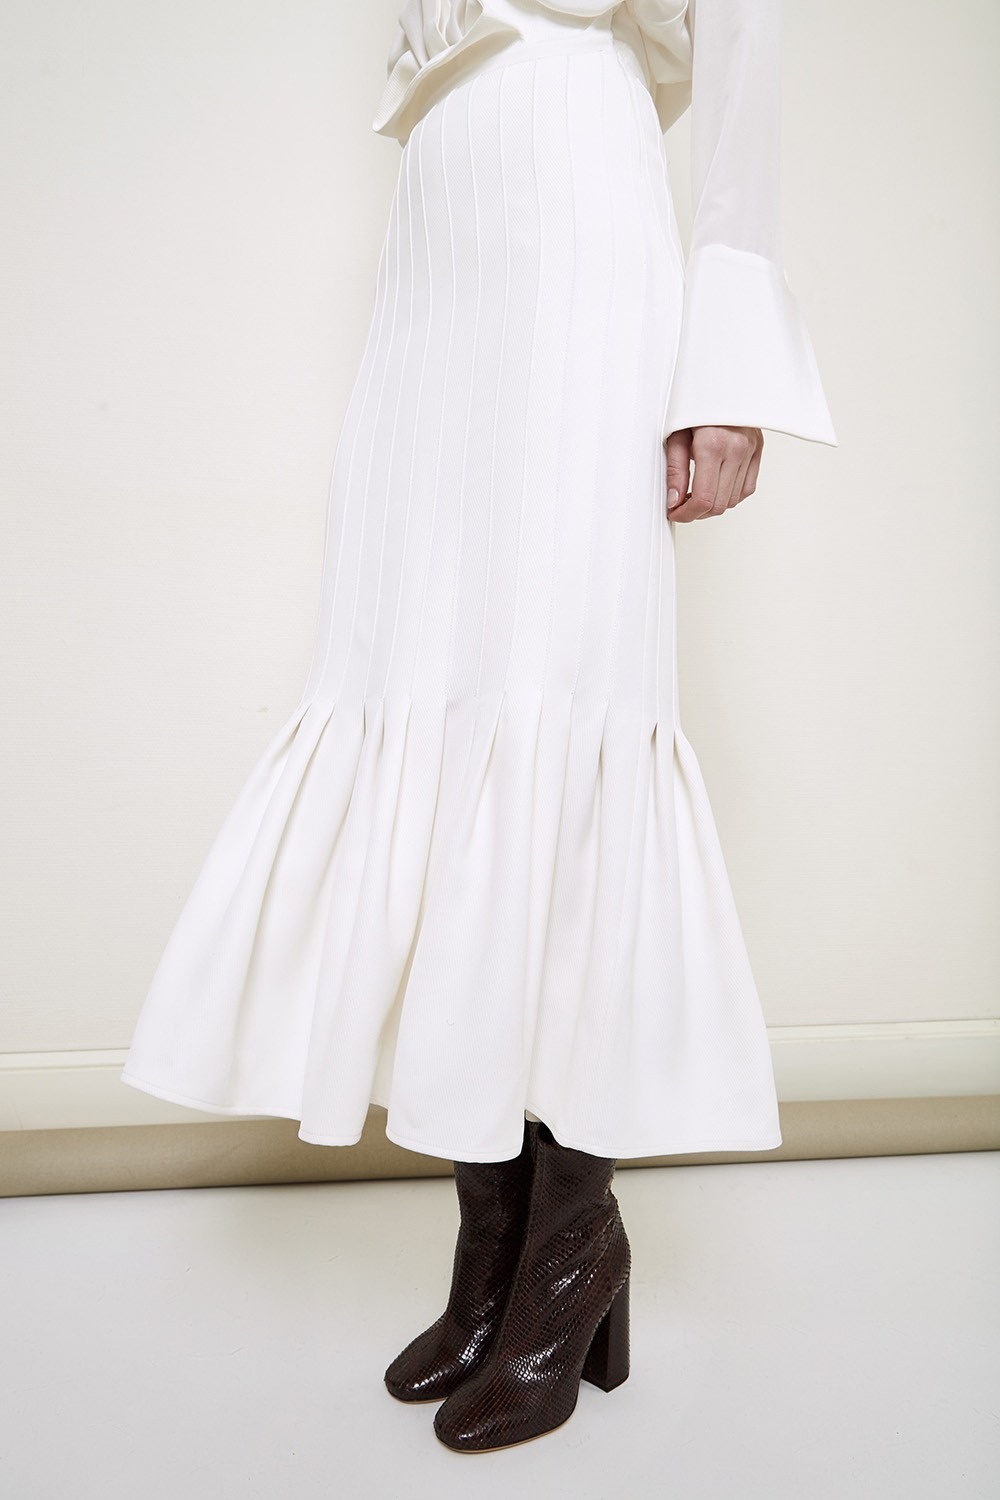 Ellery Rational Pleated Skirt $1,580